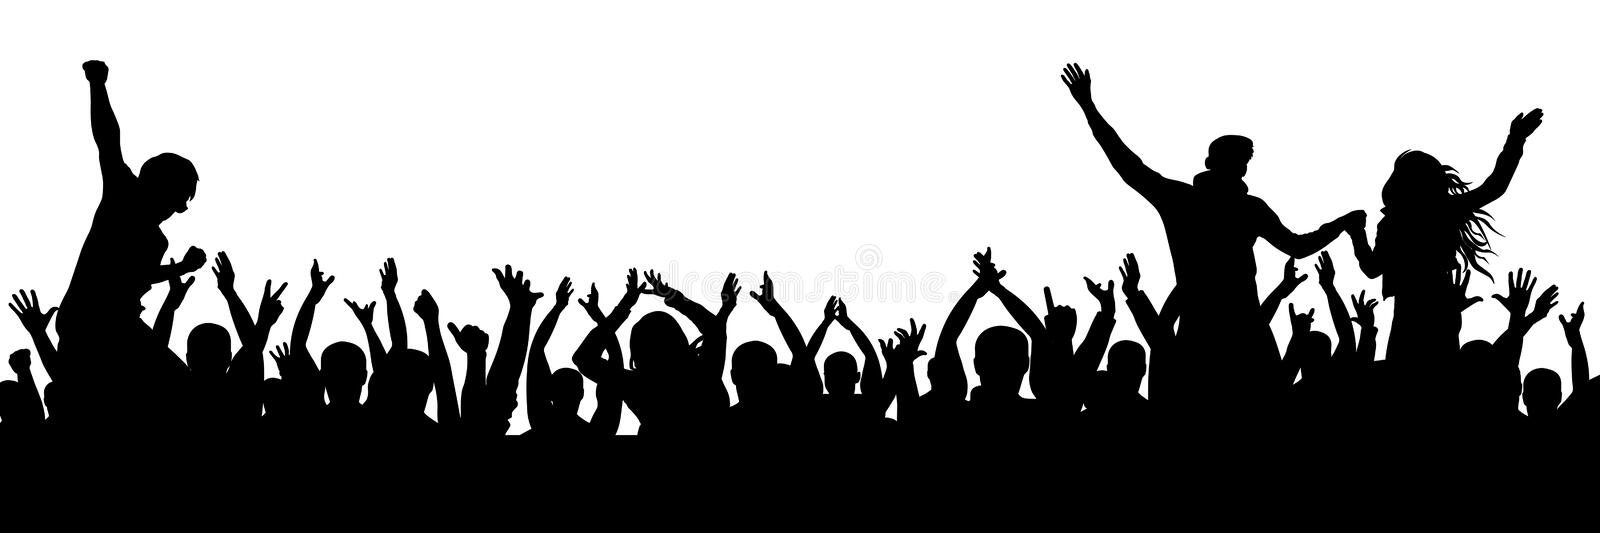 Cheerful fans party crowd. Cheering hands up applause. Crowd of people silhouette vector illustration